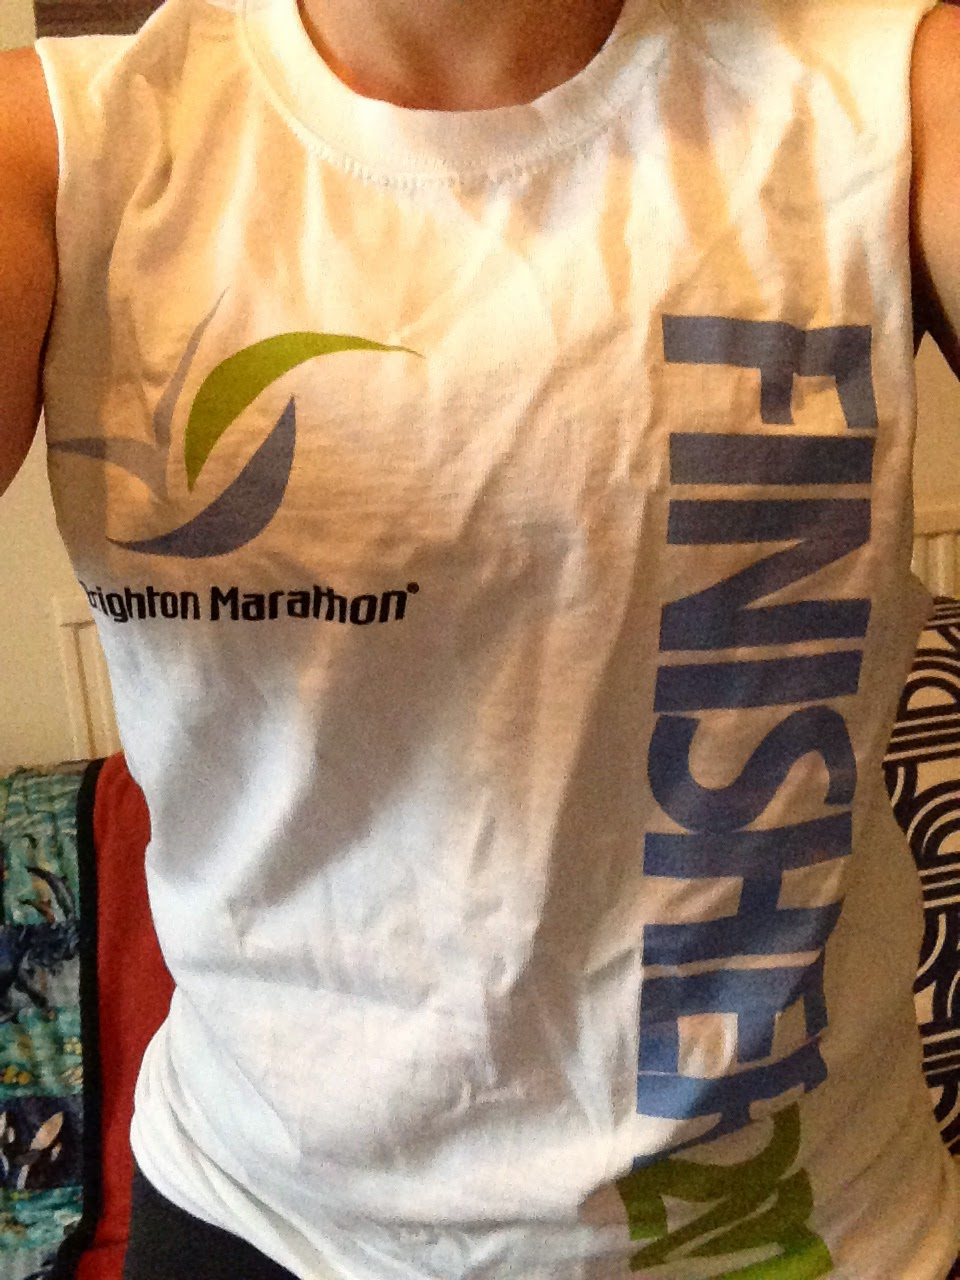 Brighton Marathon 2014 finishers t shirt